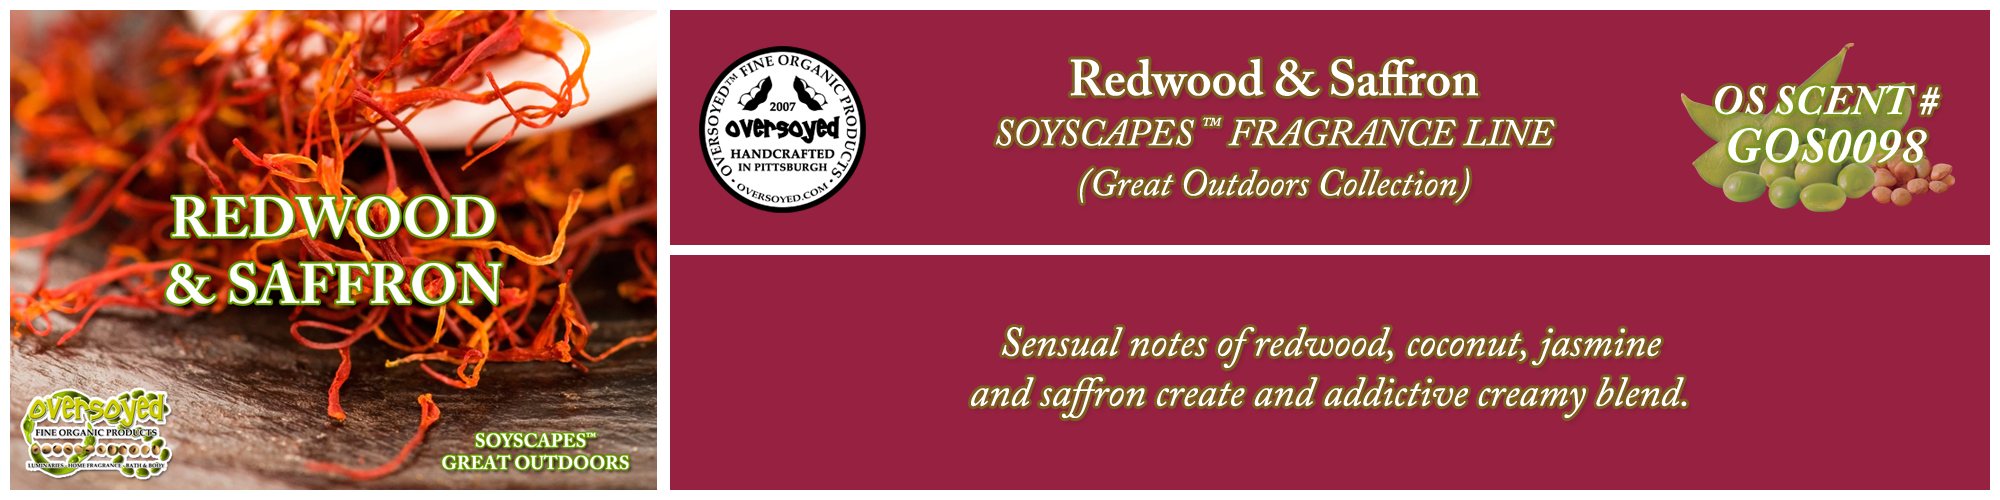 Redwood & Saffron Handcrafted Products Collection